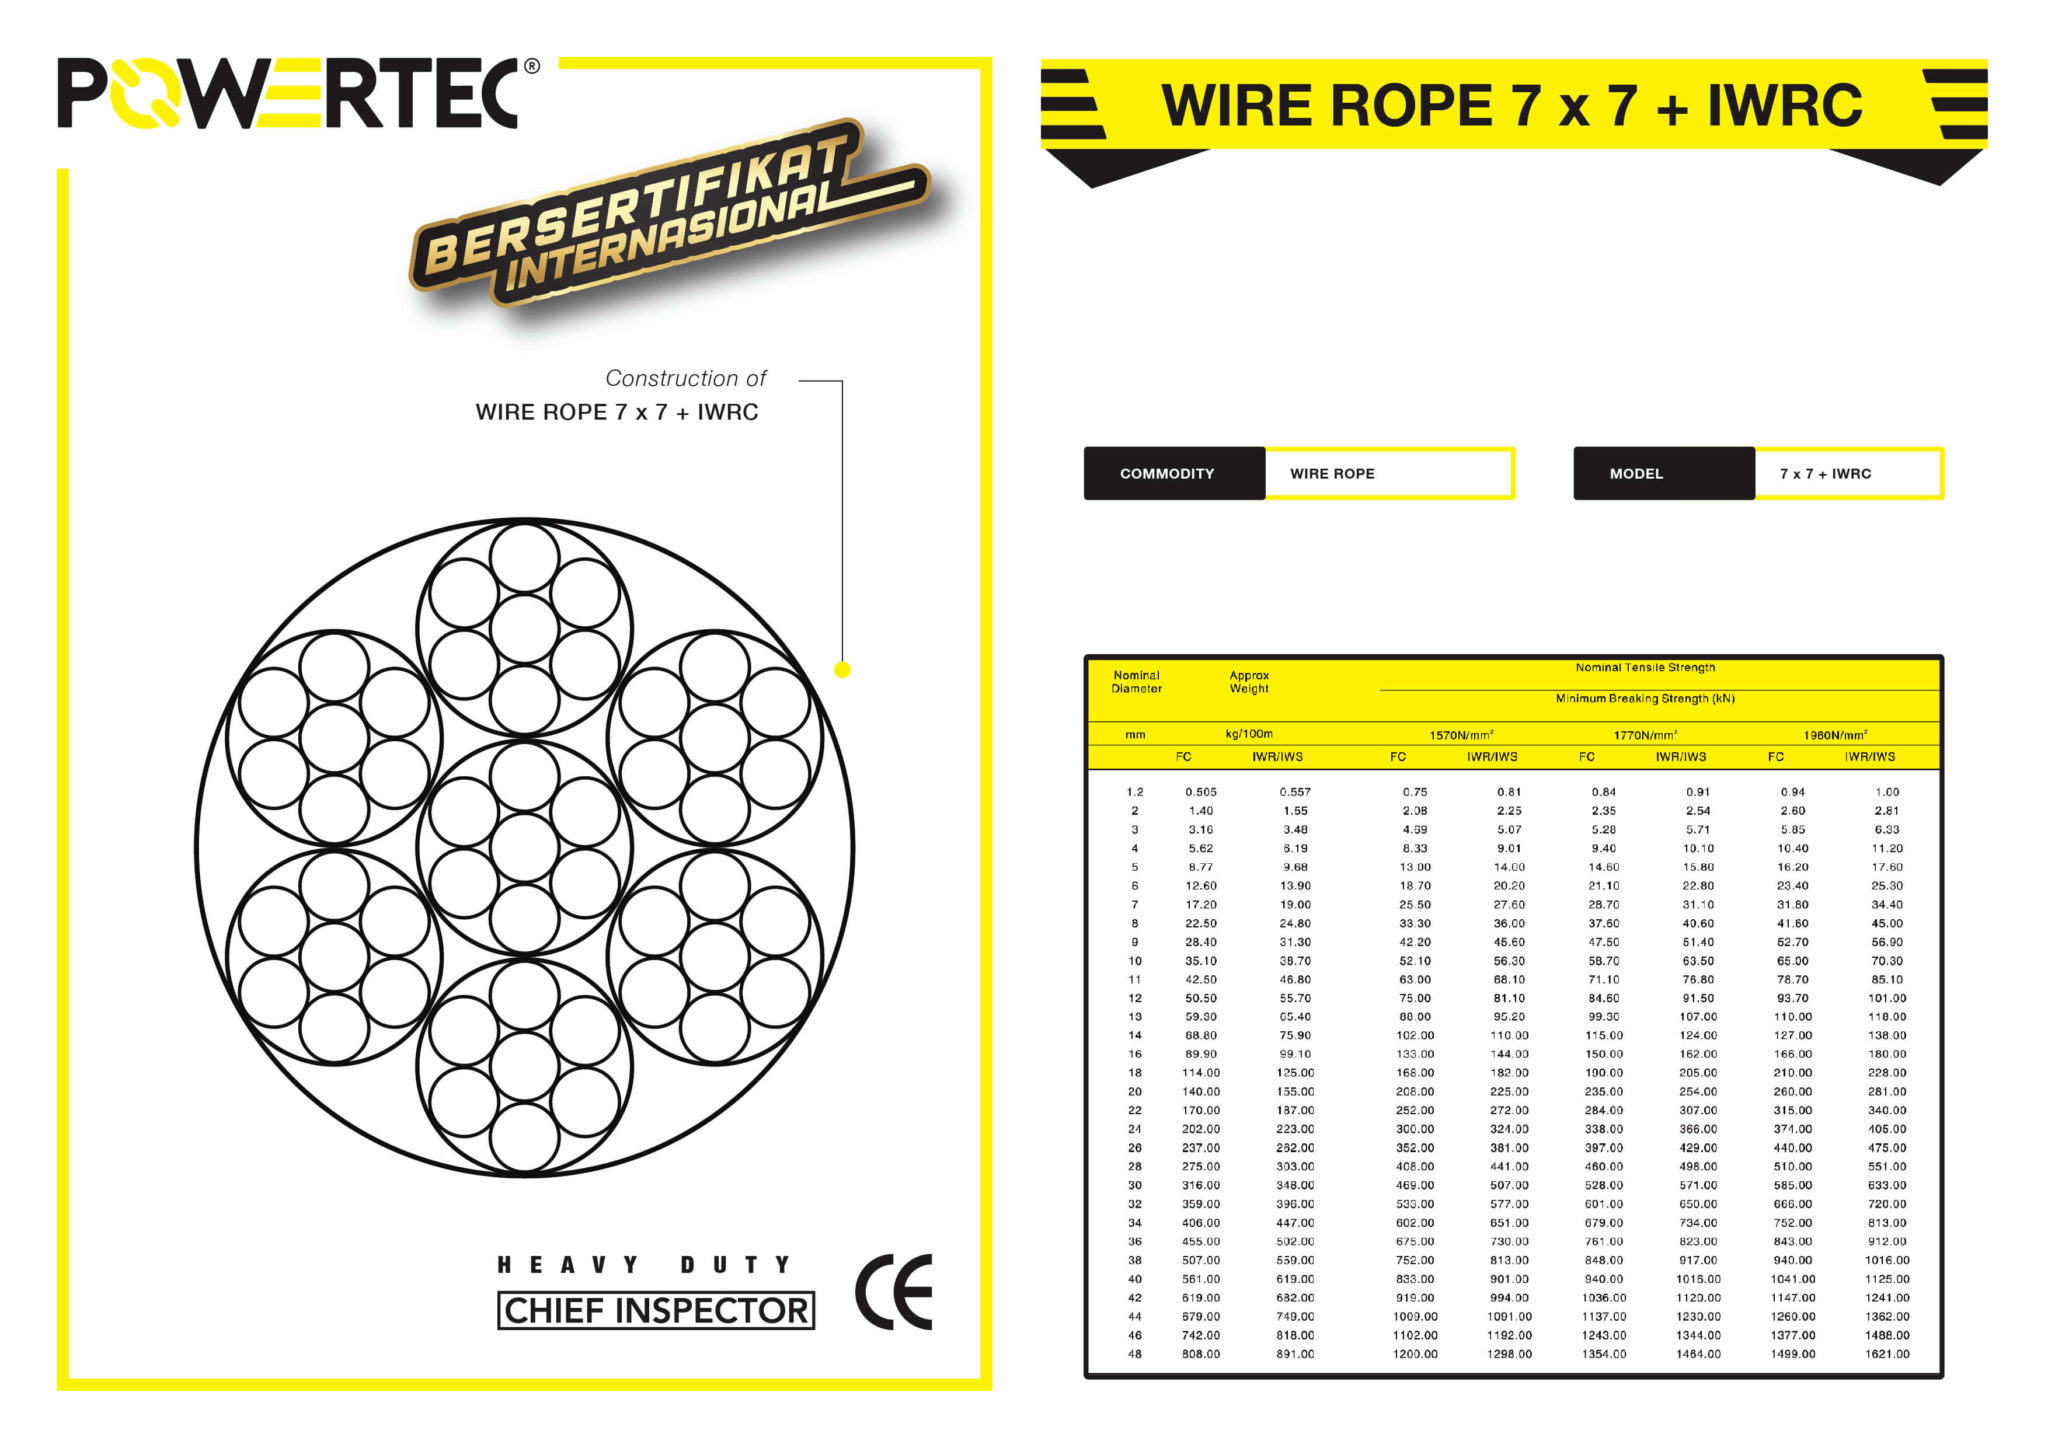 POWERTEC WIRE ROPE 7 x 7 + IWRC BROCHURE